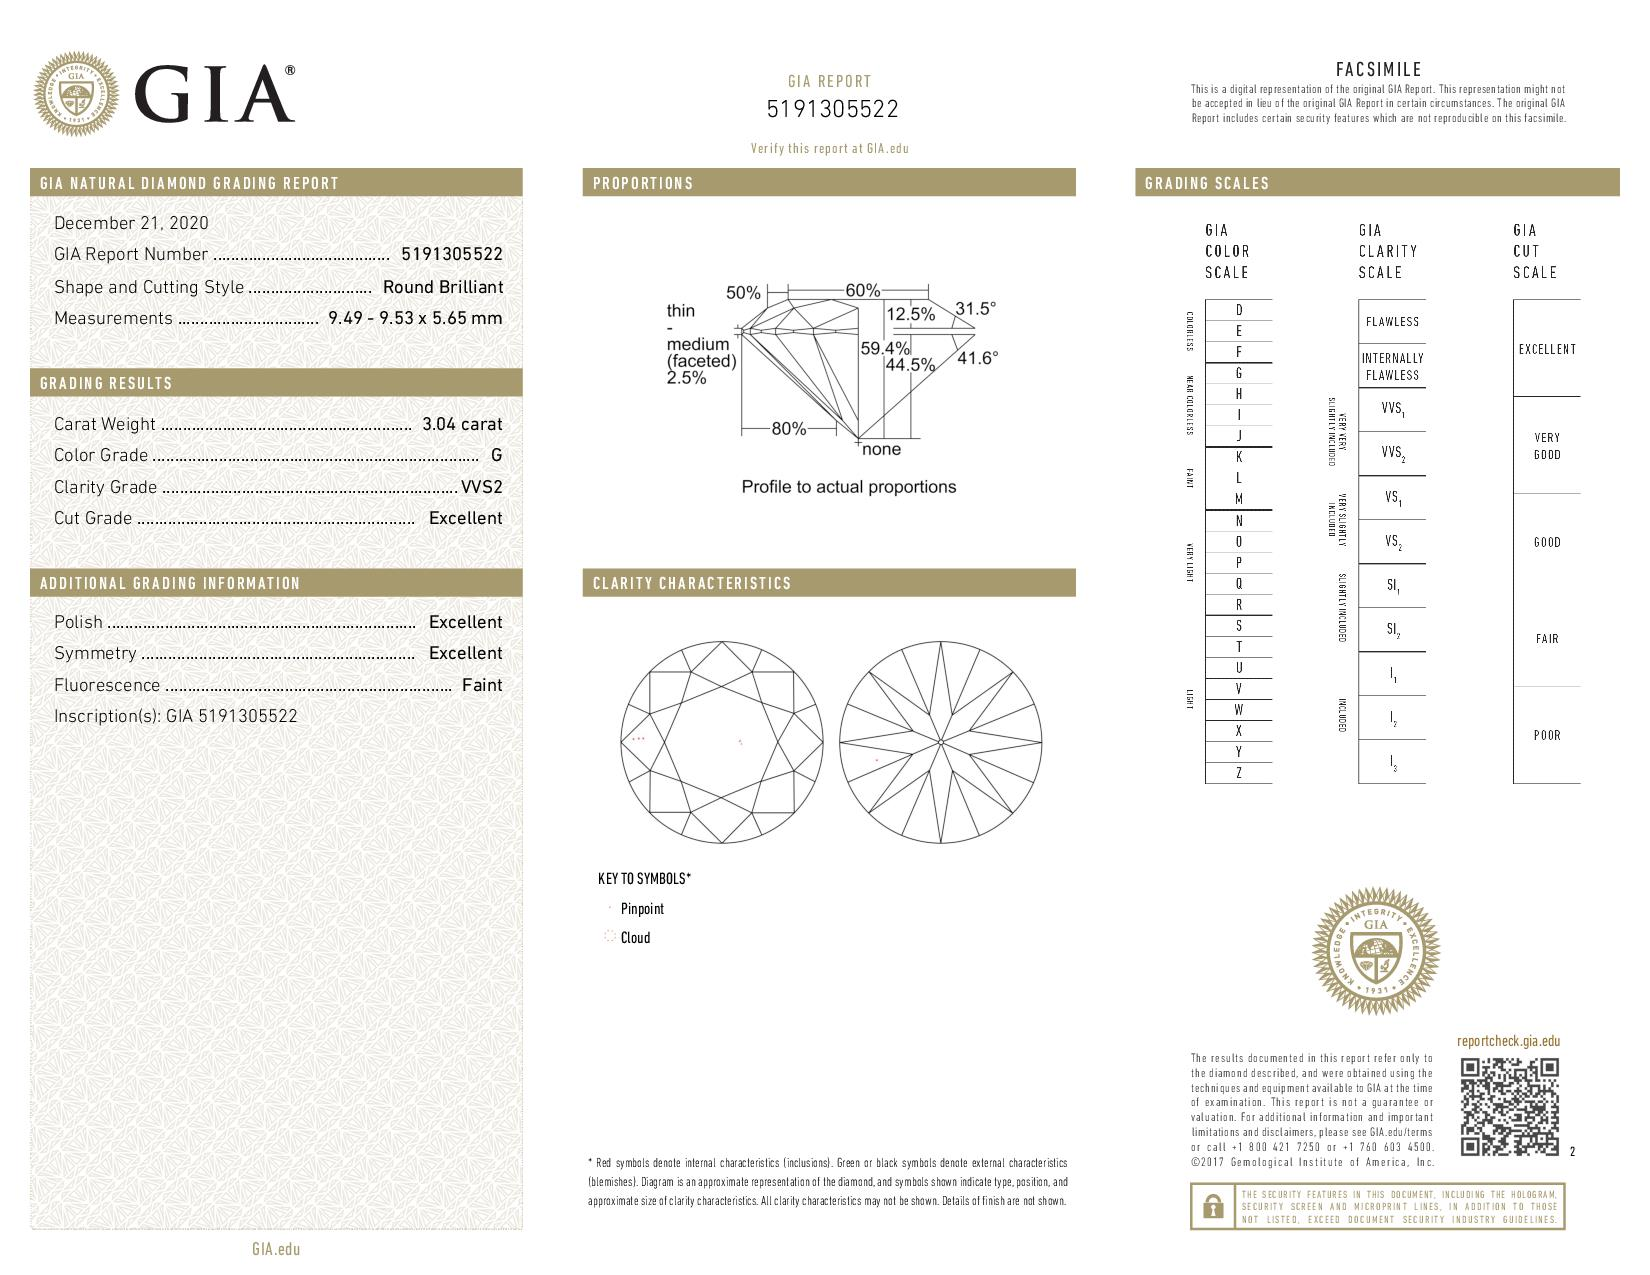 This is a 3.04 carat round shape, G color, VVS2 clarity natural diamond accompanied by a GIA grading report.